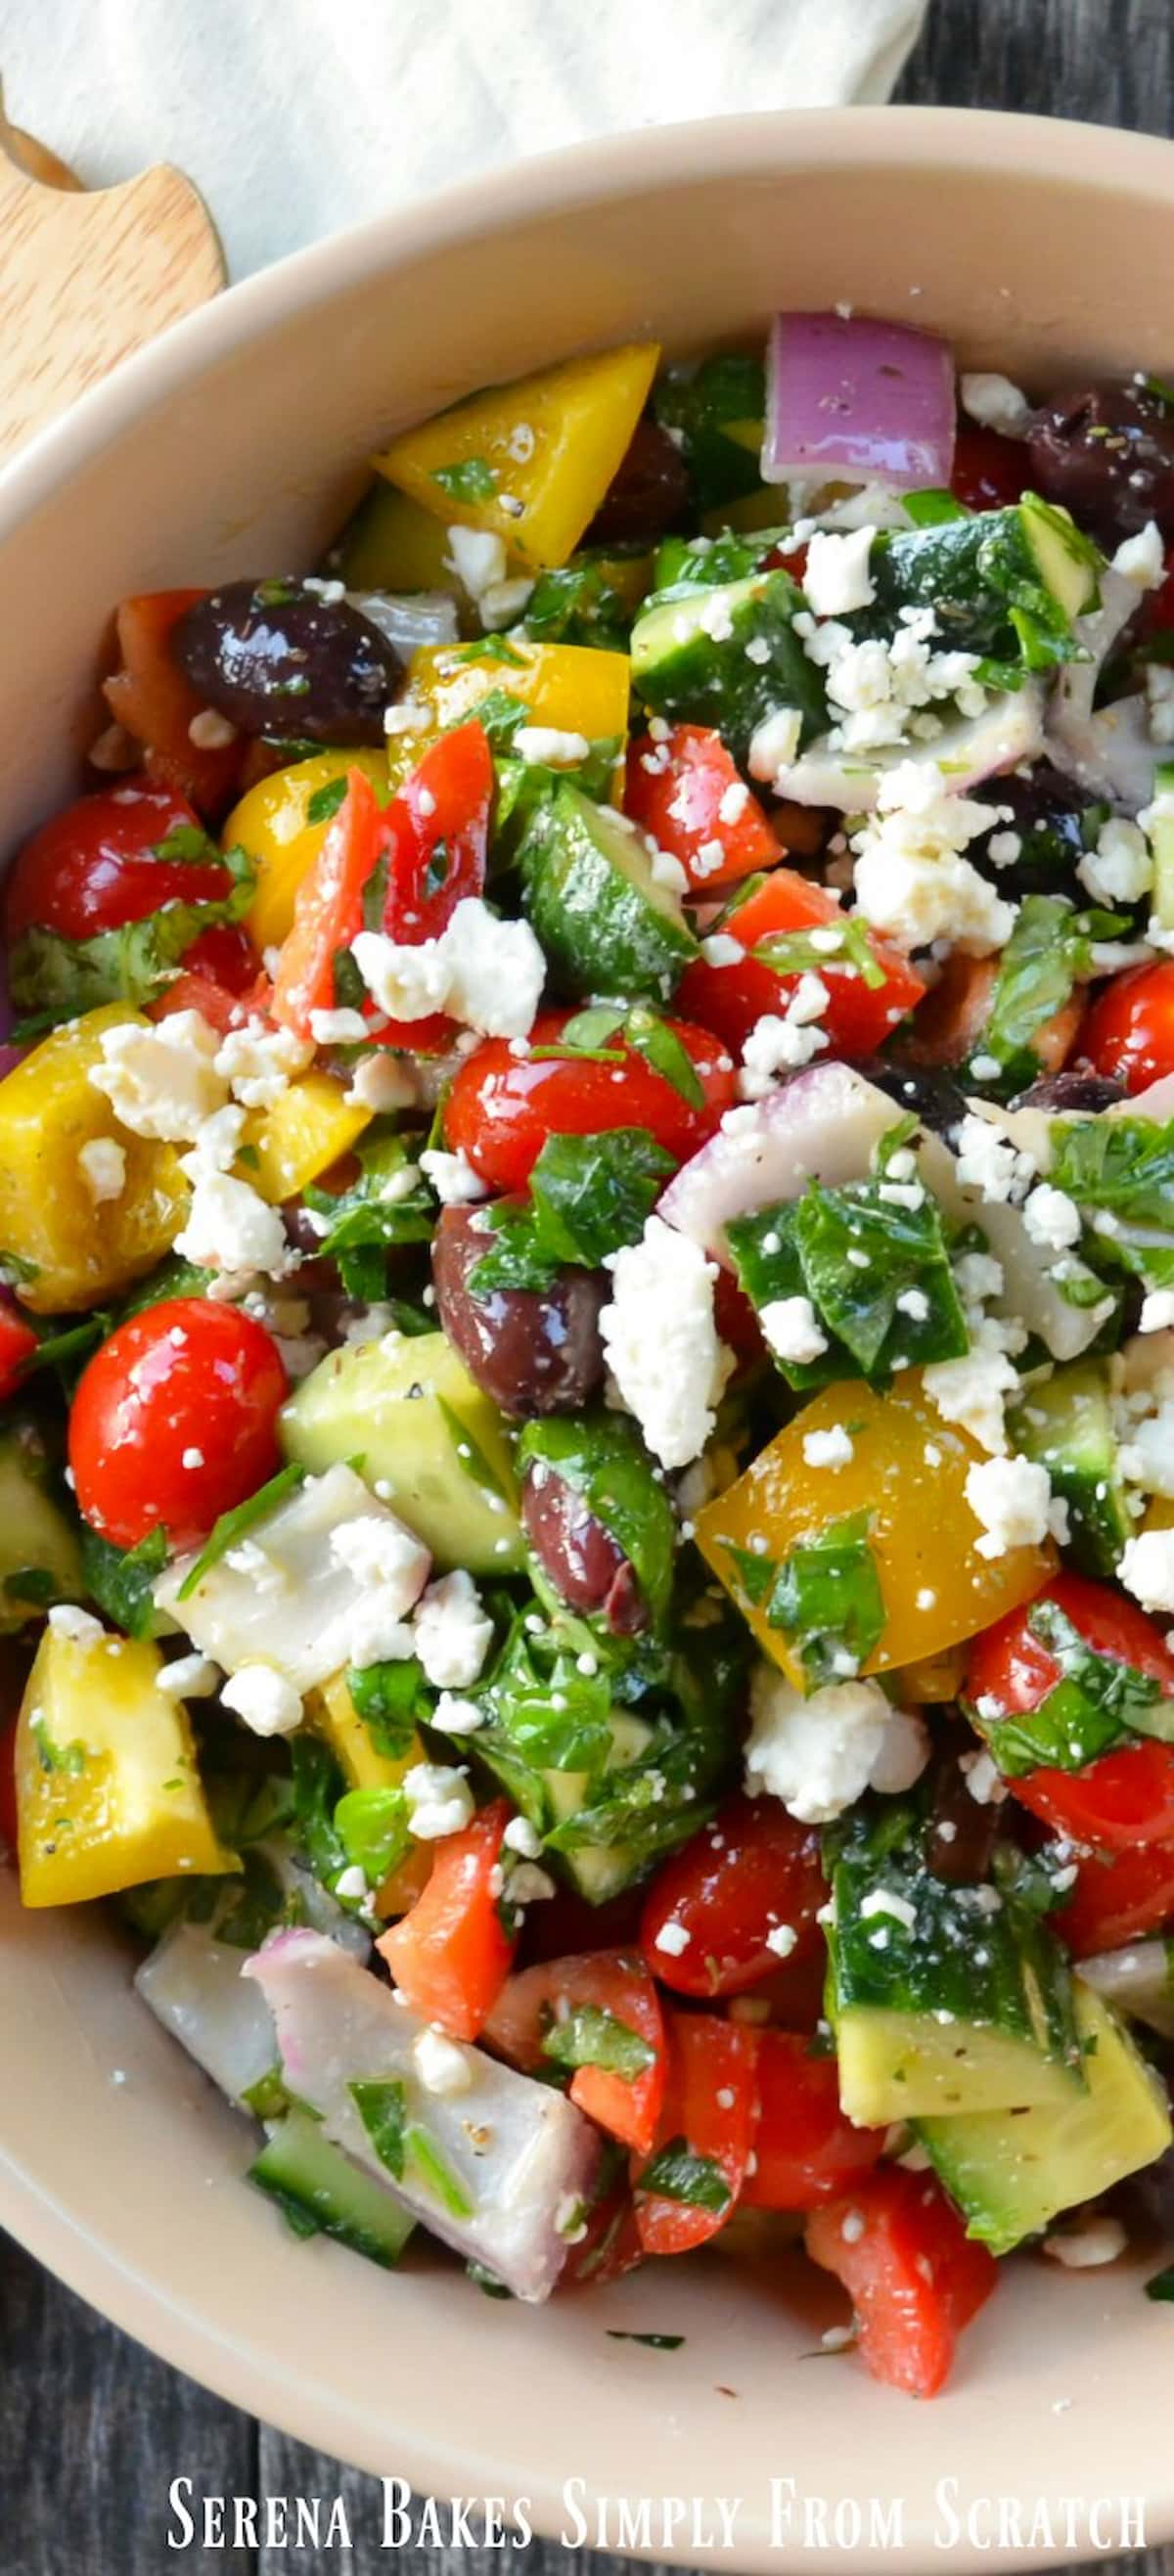 A down shot of Greek Salad in a cream colored bowl with cherry tomatoes, diced red bell pepper, diced yellow bell pepper, diced red onion, and feta cheese sprinkled over the top.